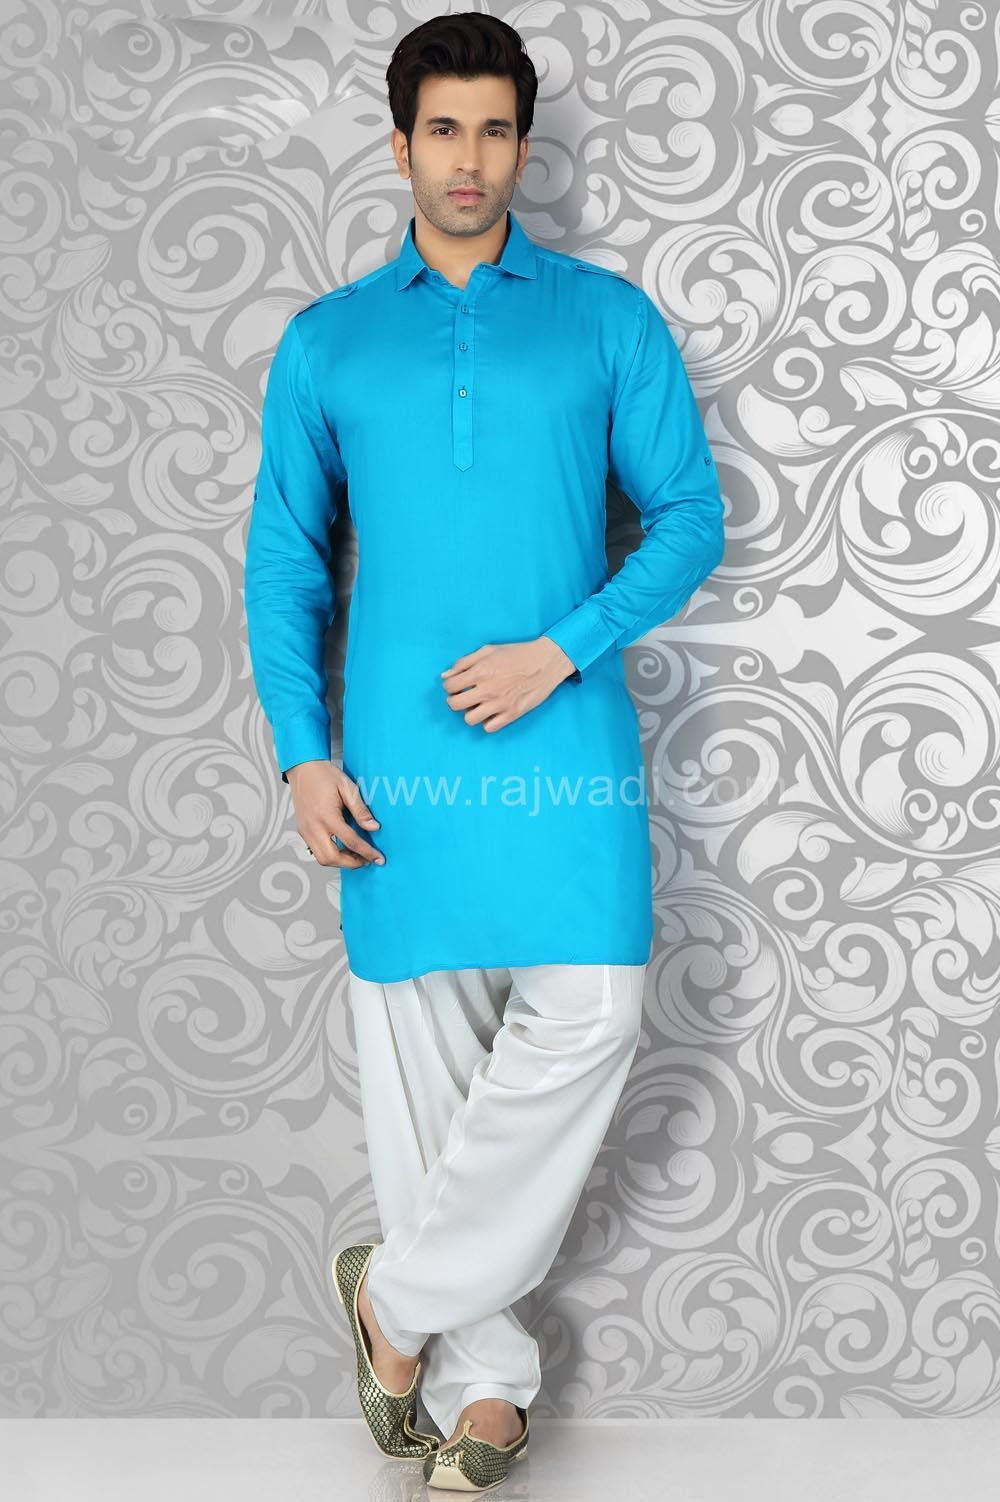 Voile fabric pathani suit wedding outfit options in pinterest